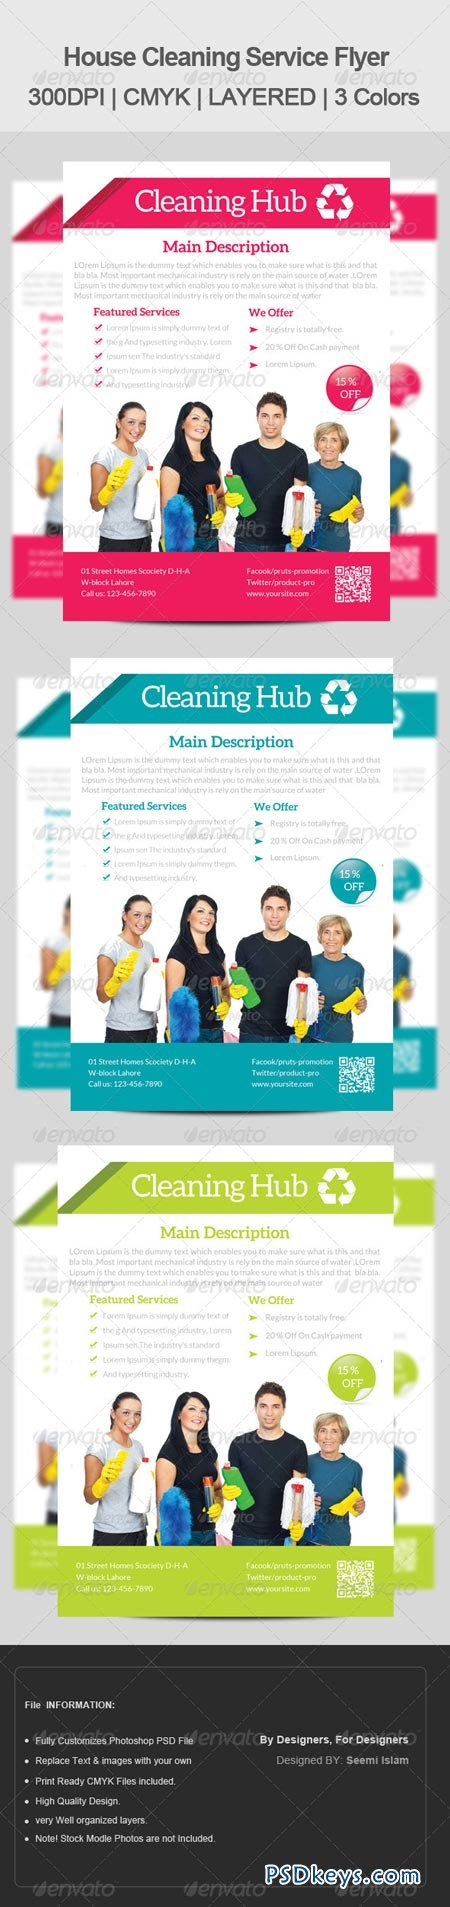 house cleaning services flyer template 6680889 house cleaning services flyer template 6680889